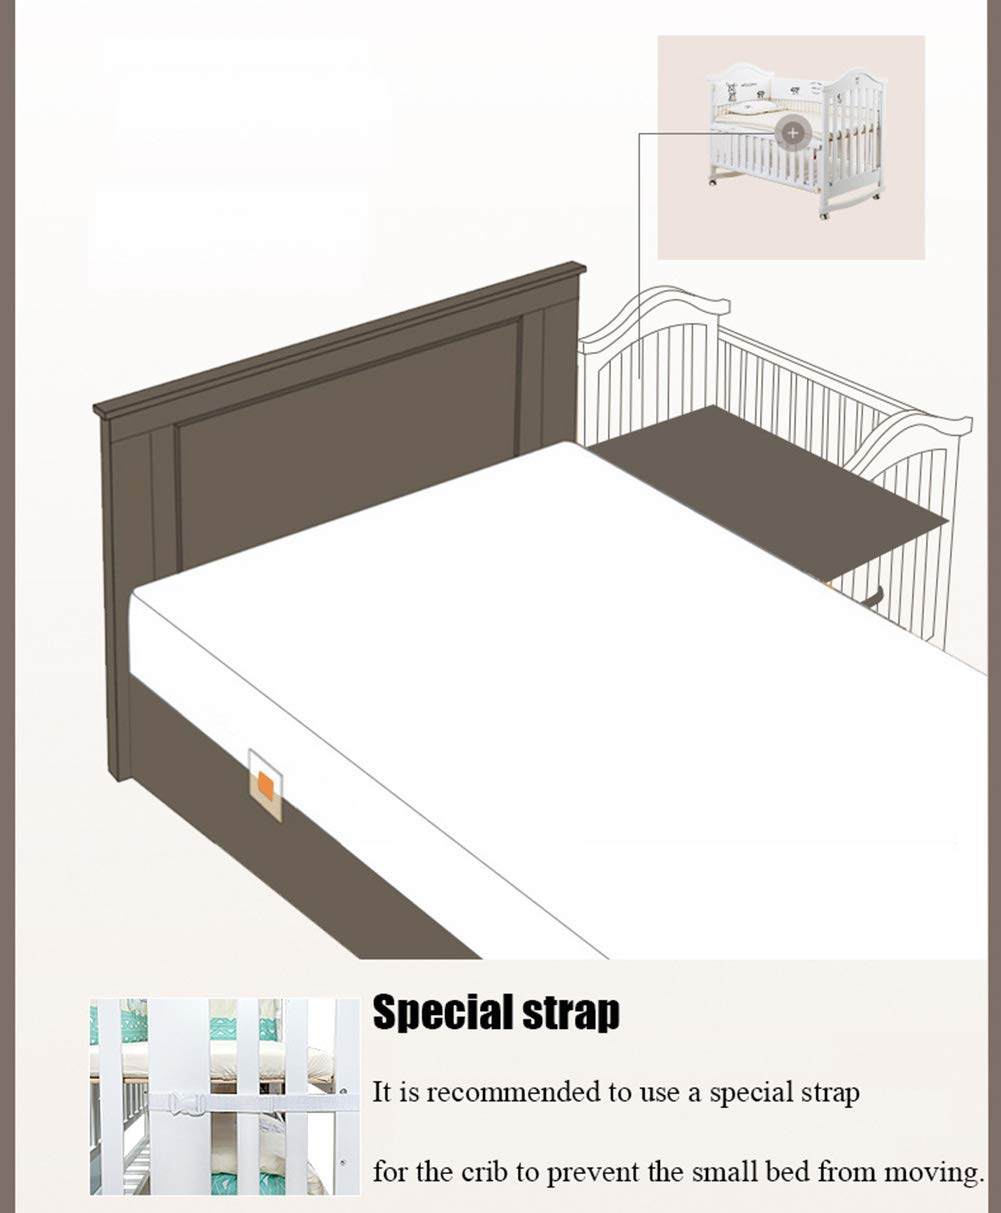 XUNMAIFLB Removable Toddler Bed, Wooden Baby Cot Bed, Crib, Solid Wood Splicing Bed, Cradle Bed (outer Diameter: 126.5 * 73.5 * 104cm/inner Diameter: 120 * 65cm) Safety XUNMAIFLB 6-12 months: The bed of the growing bed is adjusted to a safe depth of 2 blocks to protect the baby during the crawling period. 0-6 months newborn bed: 55.5cm scientific height, no need to deep bend, reduce spinal strain. More than 18 months: the sofa chair/teen bed sidebar removes the half-guard bed and cultivates the baby's ability to fall asleep independently. Can also be used as a sofa chair! 5